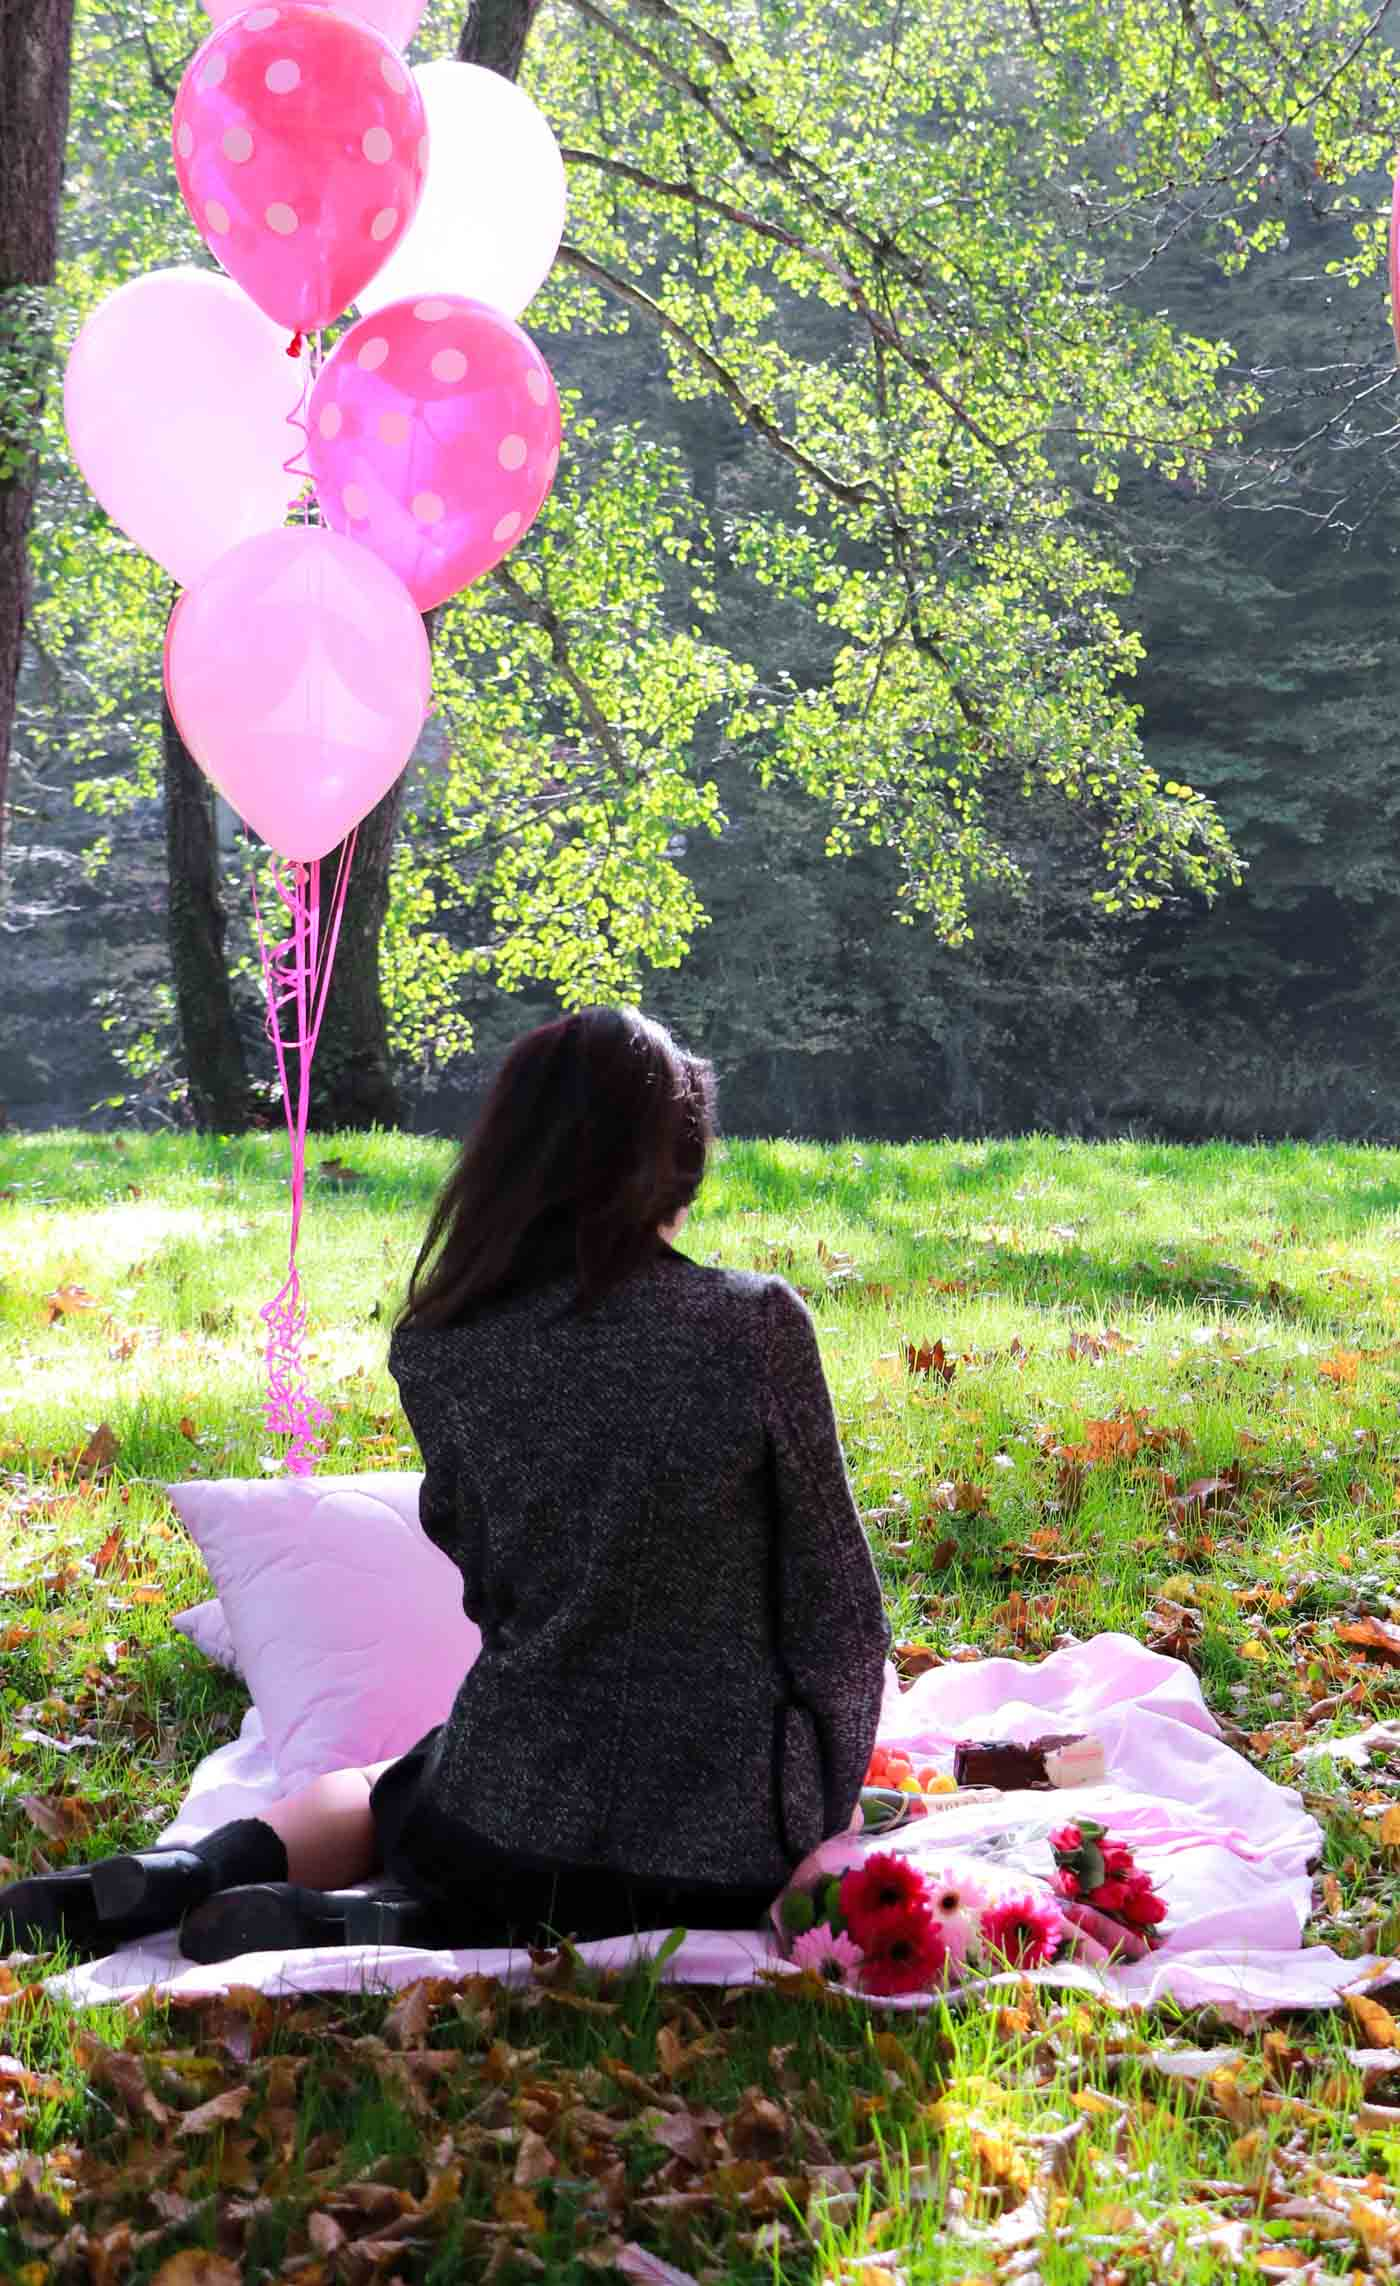 Fashion Blogger Veronika Lipar of Brunette from Wall Street celebrating her birthday on the October picnic